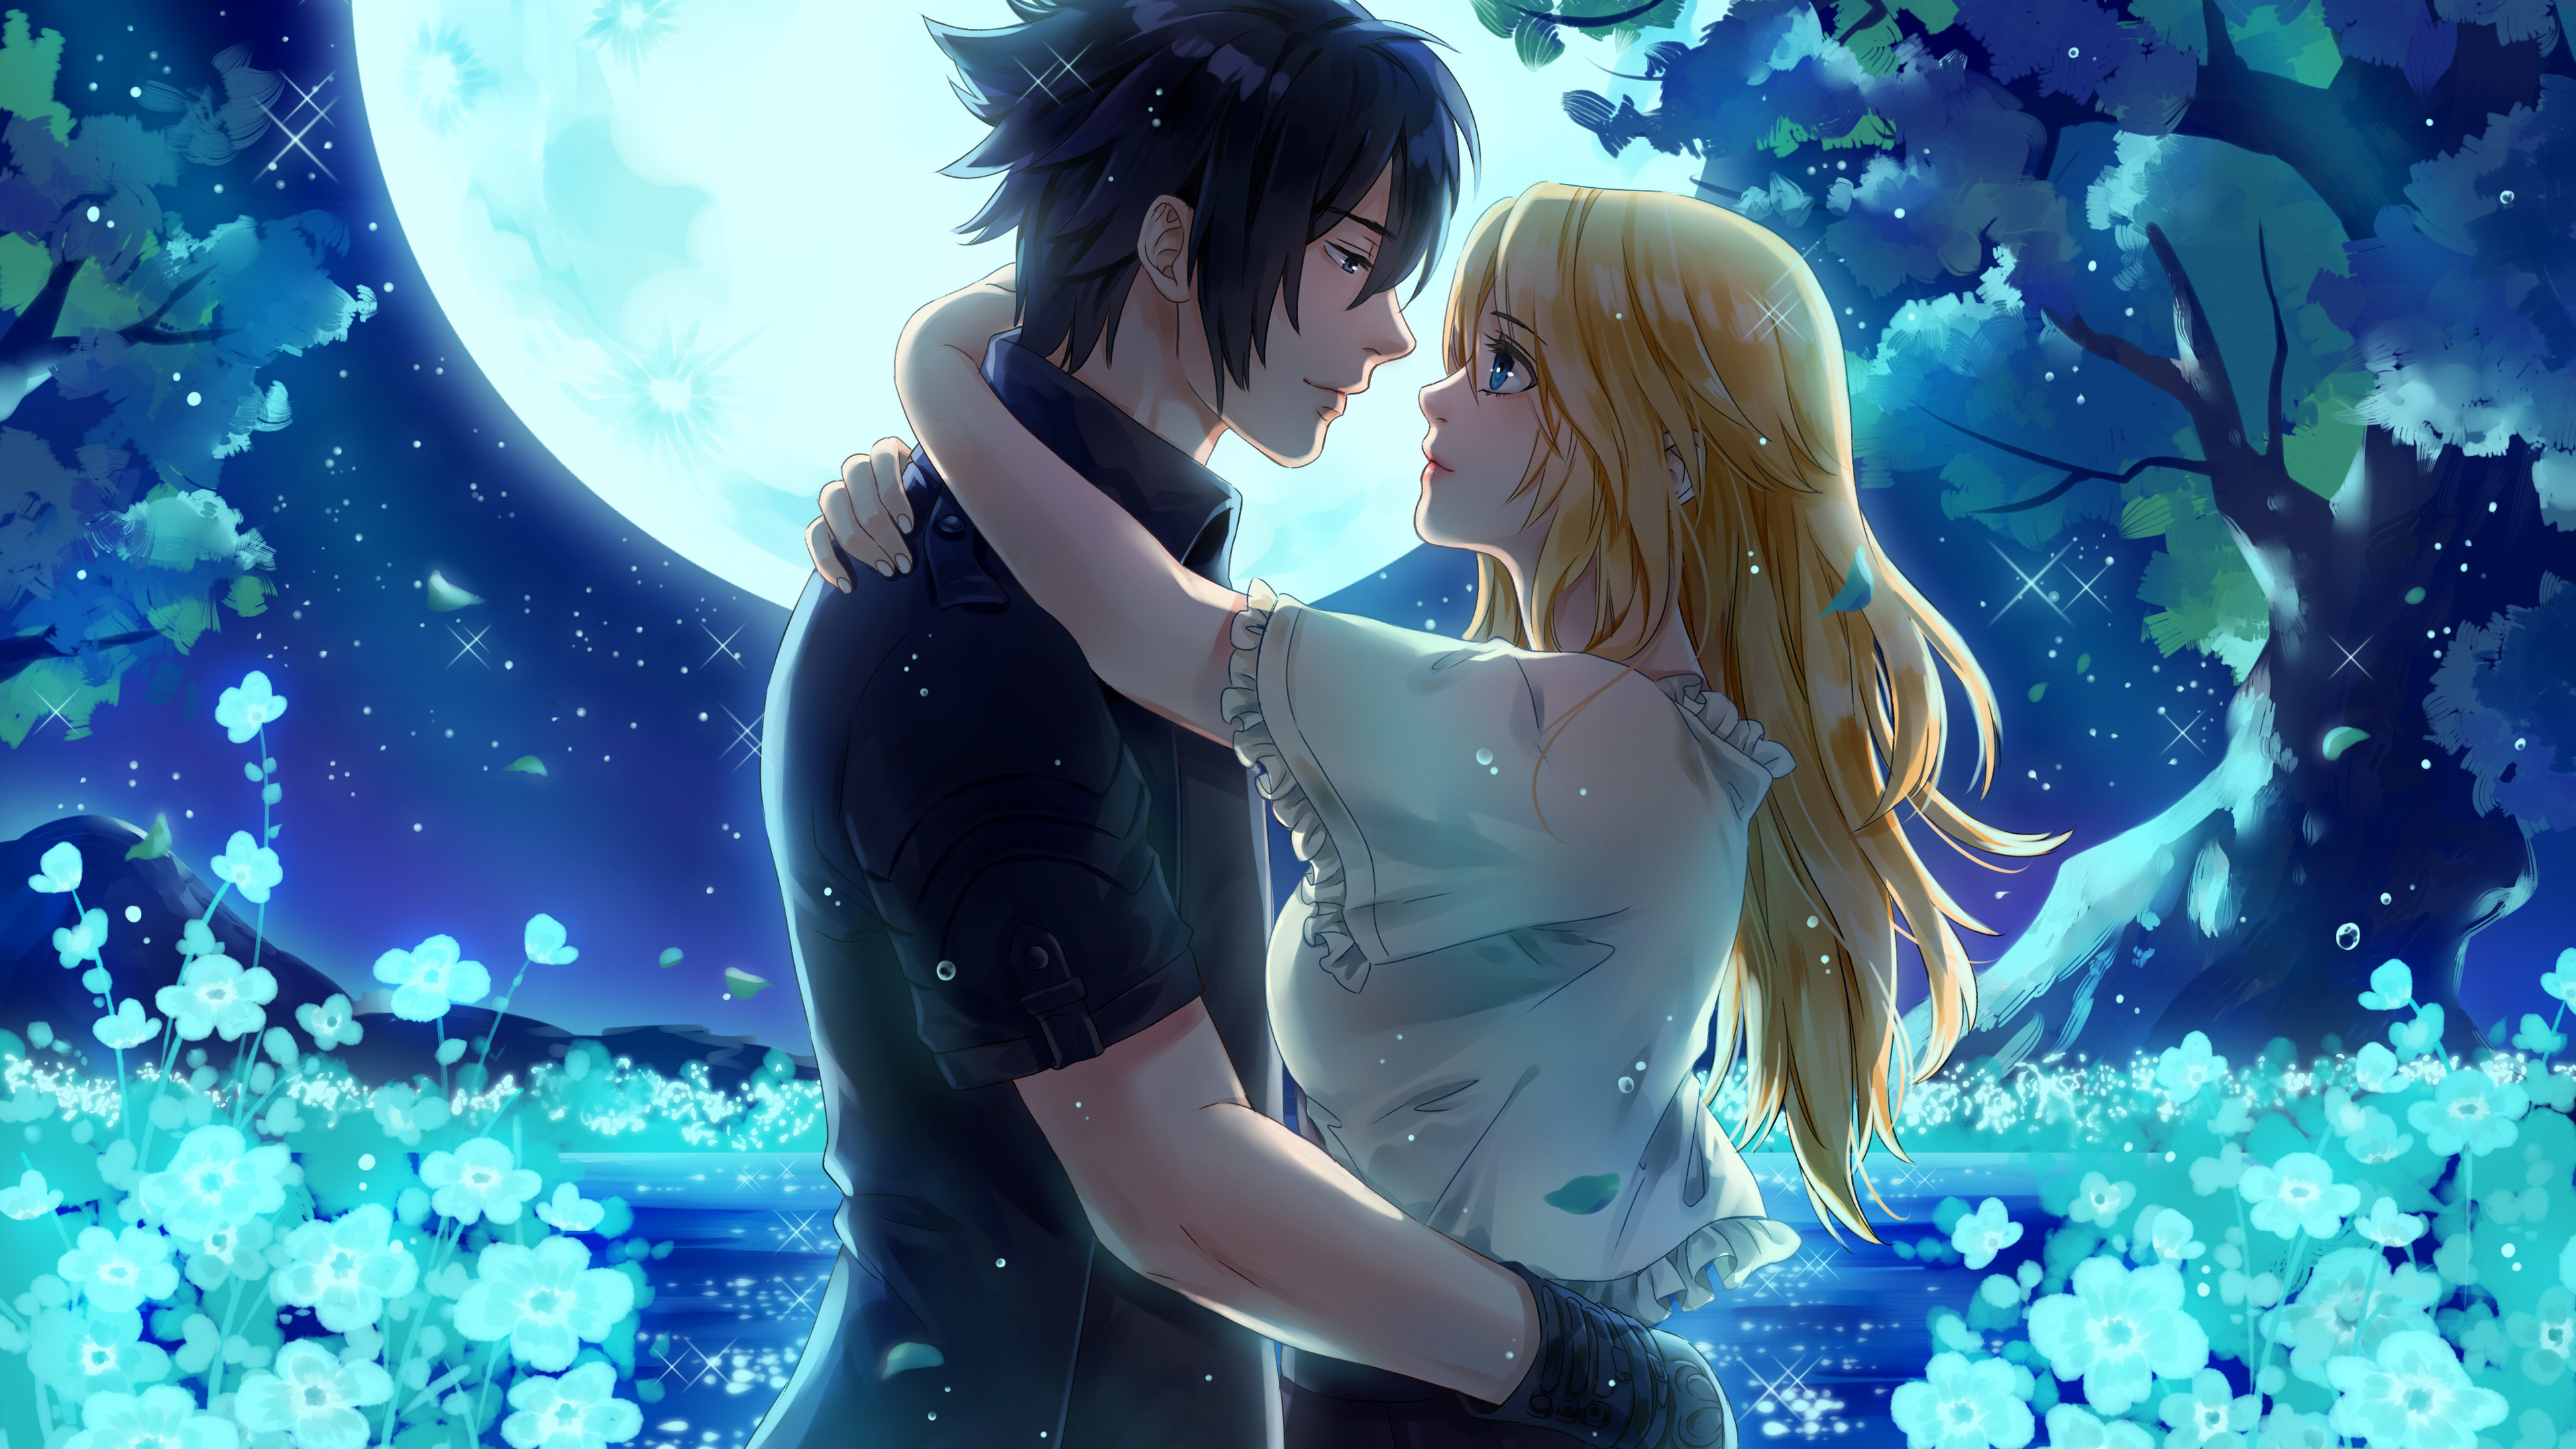 Wallpaper 4k Noctis And Stella From Final Fantasy Xv Under The